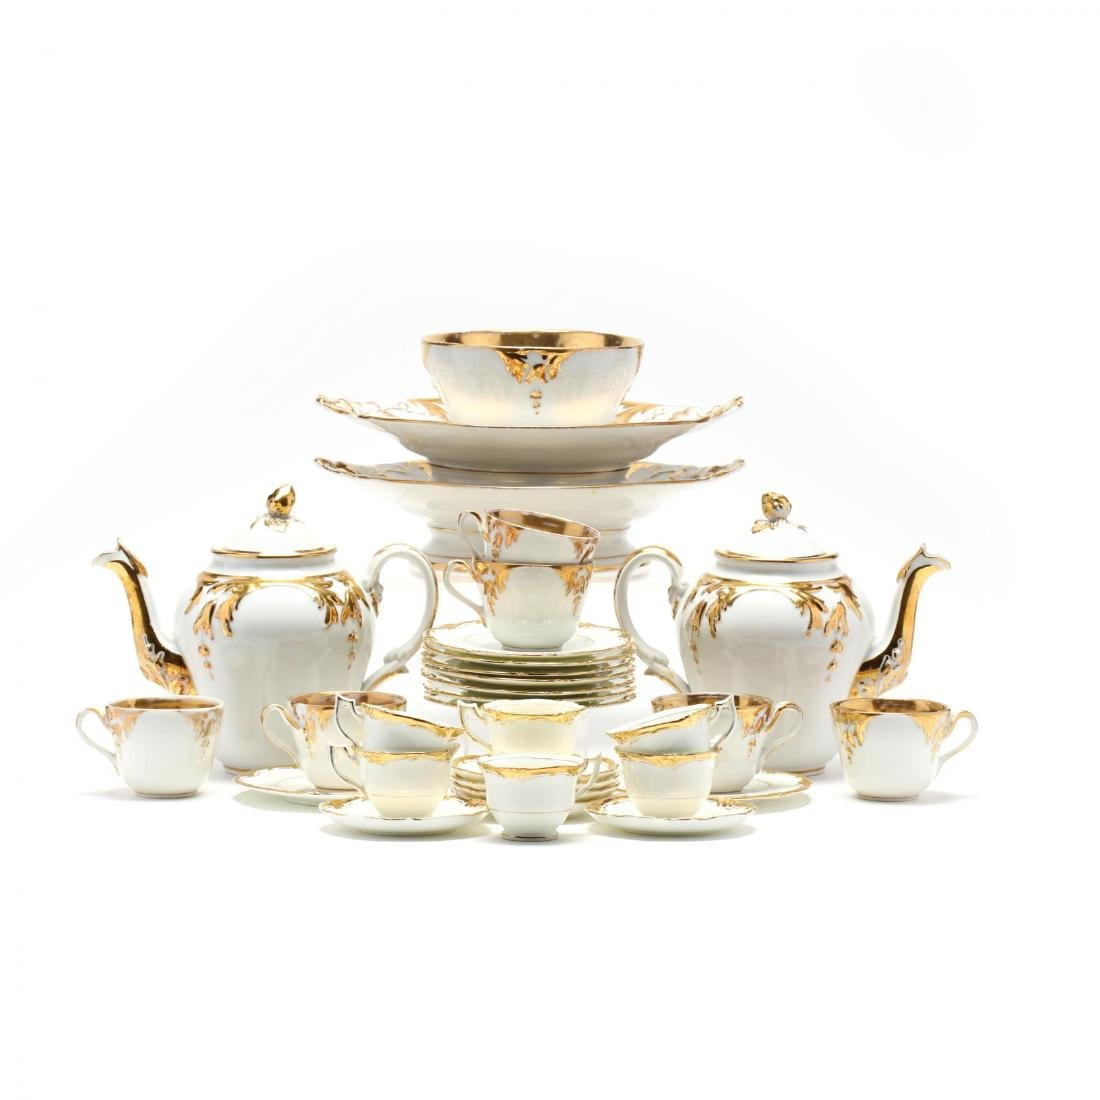 Assembled Gilt Decorated Tea Service